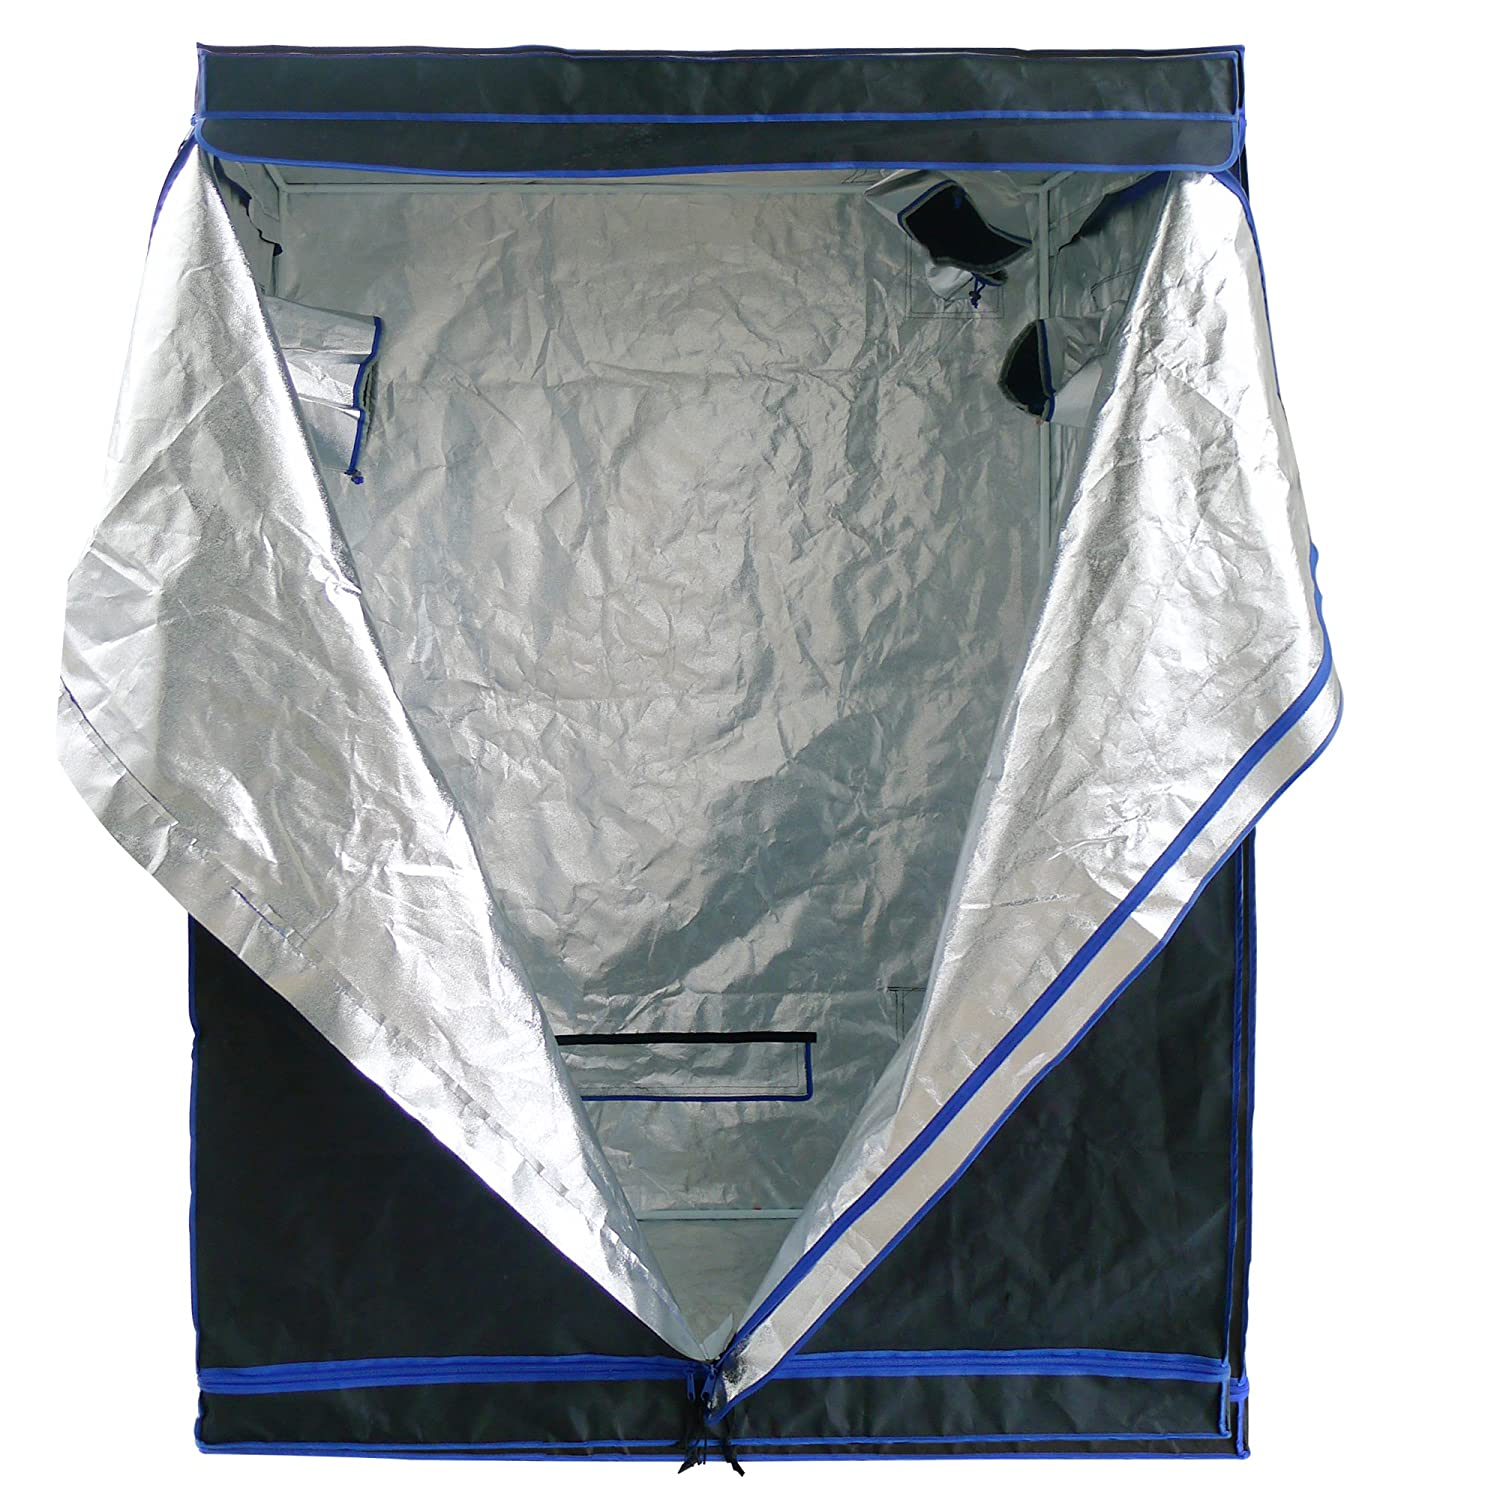 Amazon.com  ?Clearance sale?Hydroplanet™ 48x24x60 Mylar Hydroponic Grow Tent for Indoor Plant Growing (48x24x60)  Garden u0026 Outdoor  sc 1 st  Amazon.com & Amazon.com : ?Clearance sale?Hydroplanet™ 48x24x60 Mylar ...